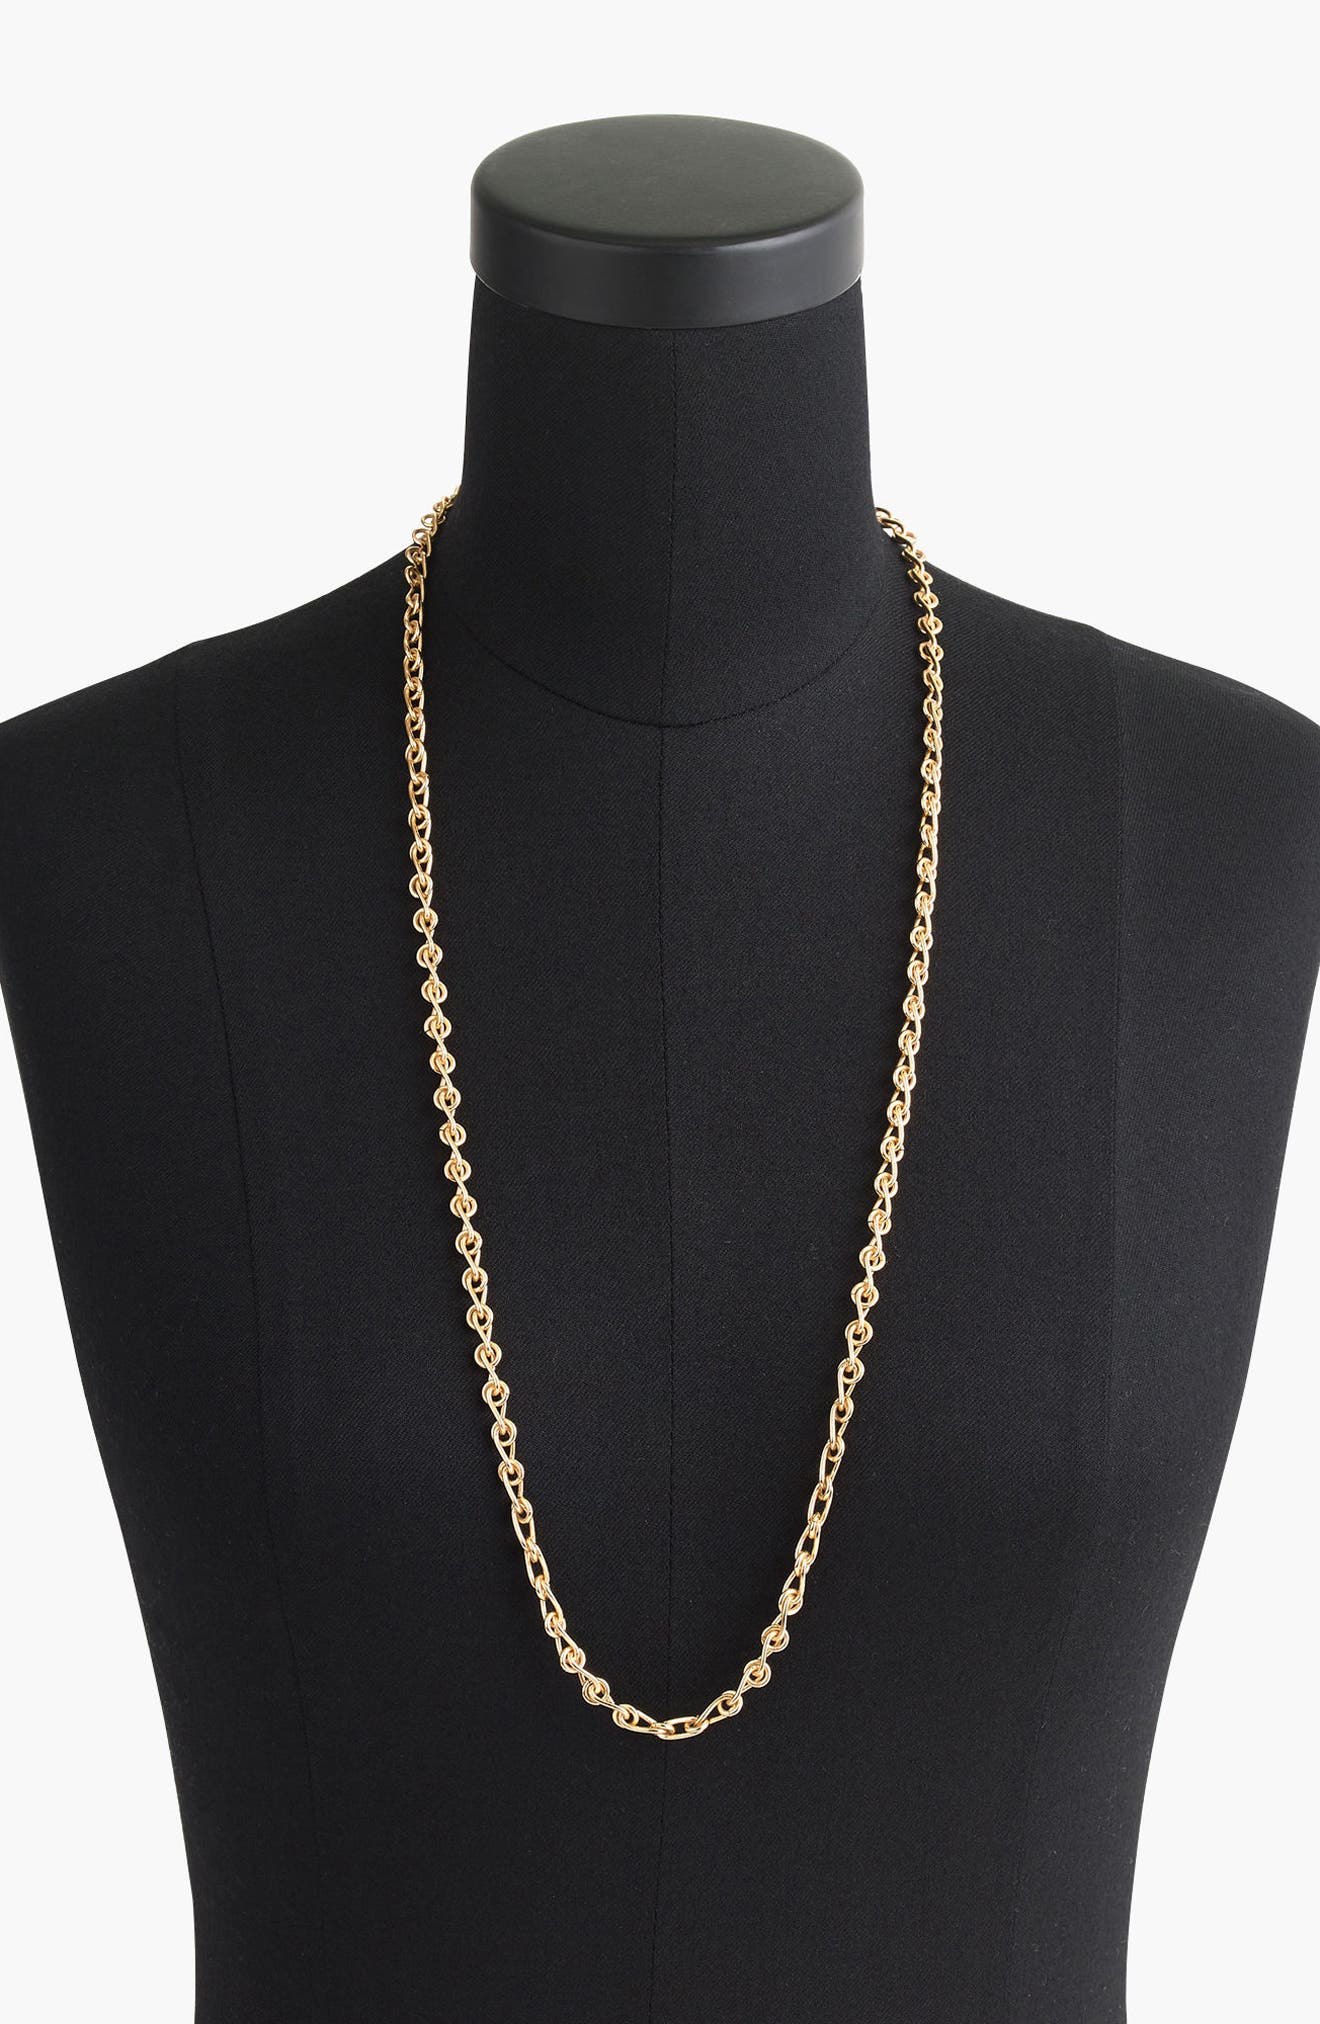 Alternate Image 1 Selected - J.Crew Chain Link Lariat Necklace